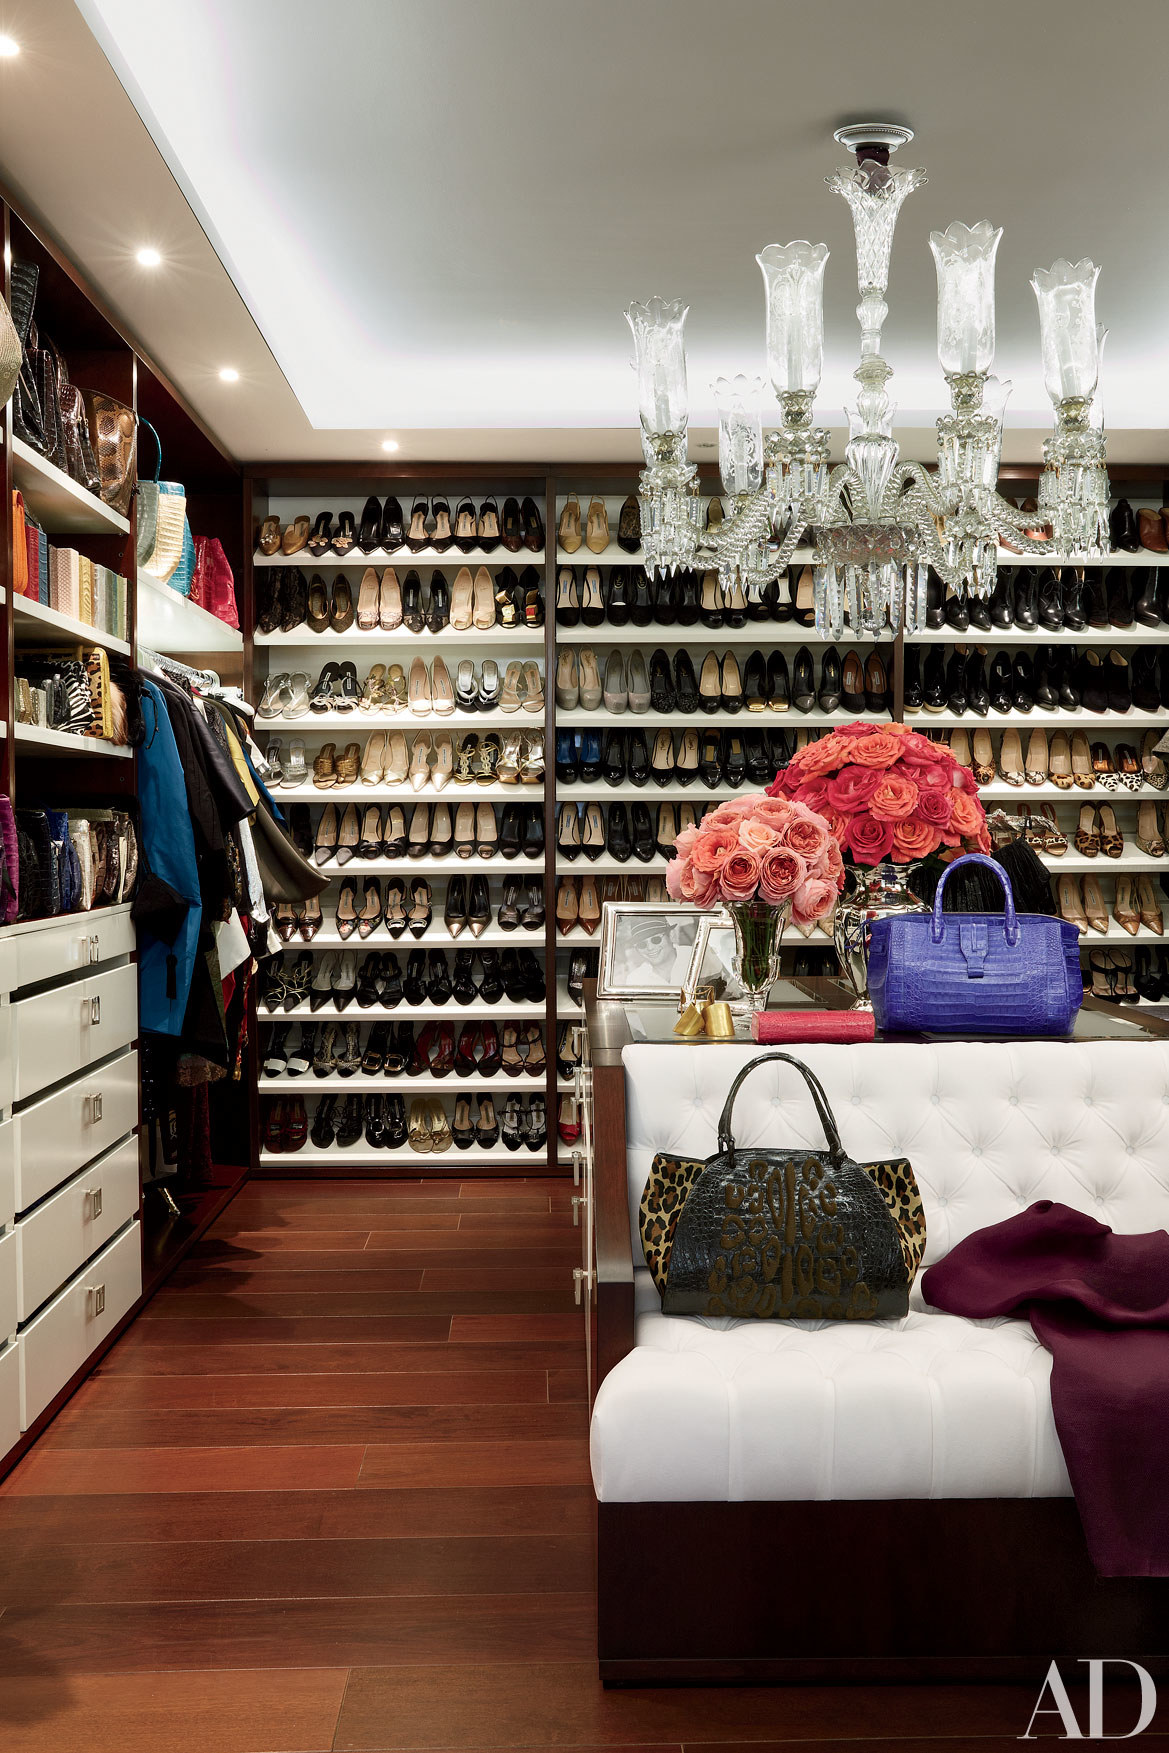 AD Extravagant Celebrity Closets 22